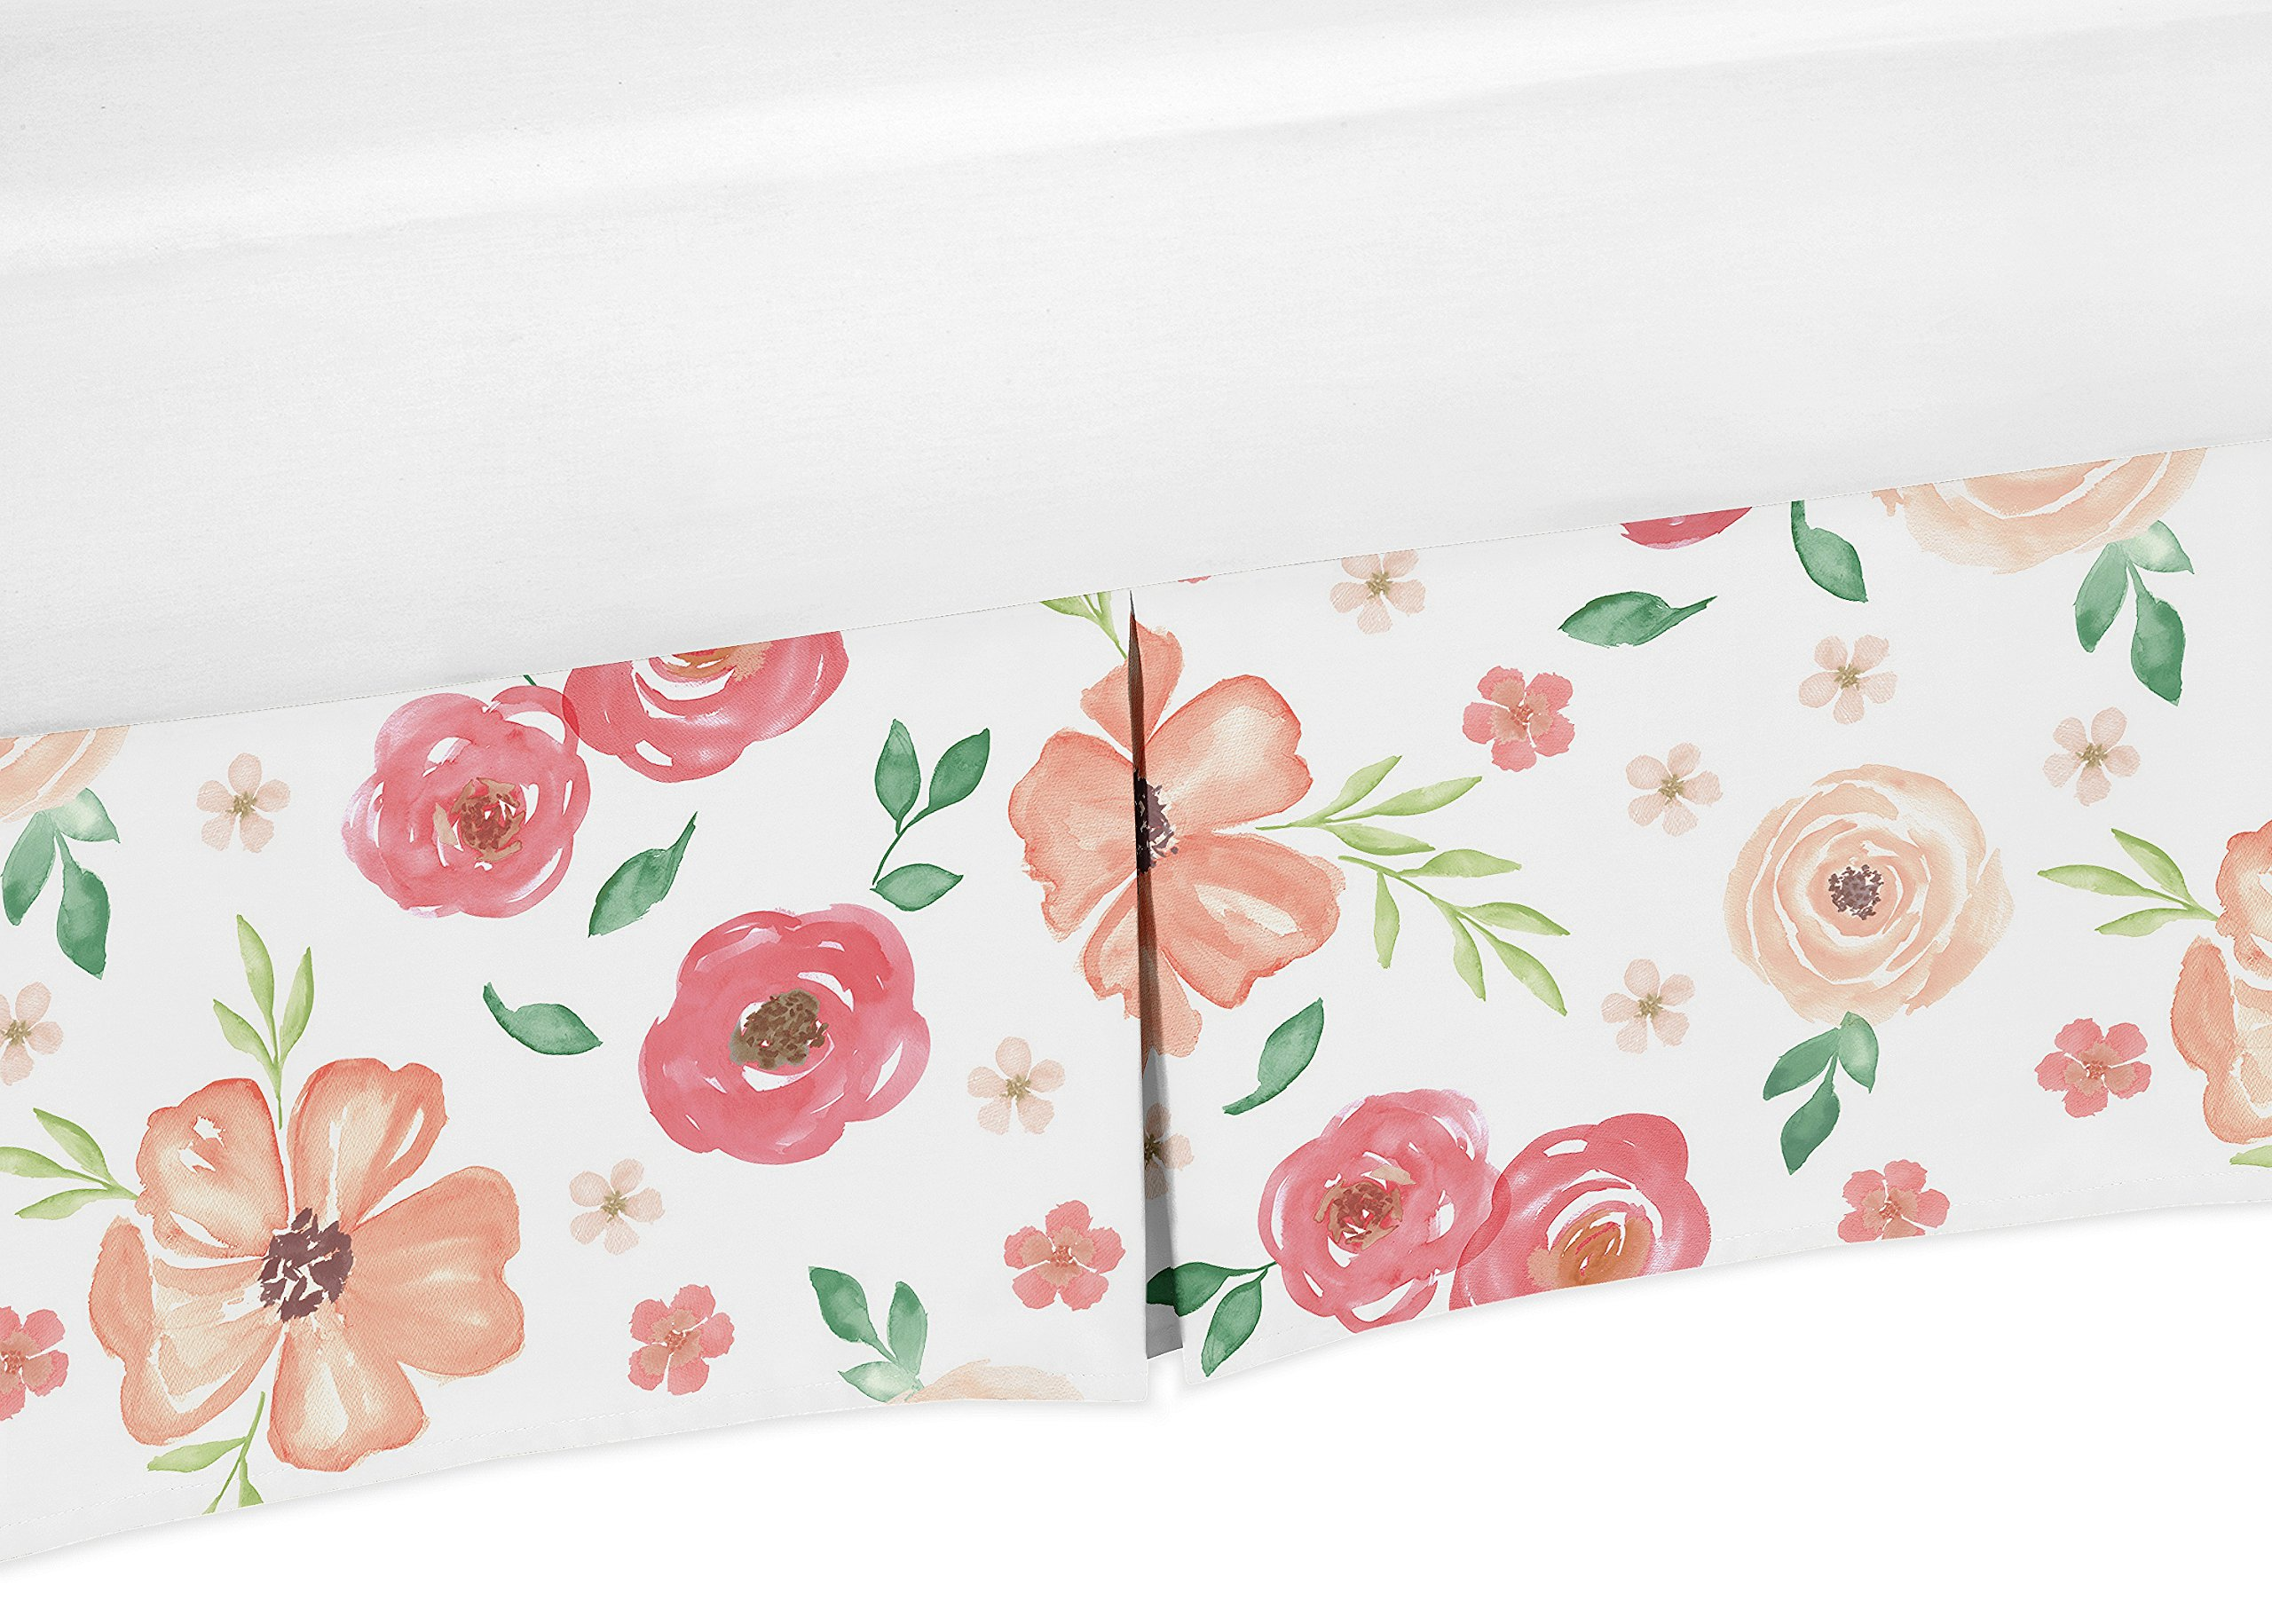 Sweet JoJo Designs Peach and Green Baby Girl Pleated Crib Bed Skirt Dust Ruffle for Watercolor Floral Collection - Pink Rose Flower